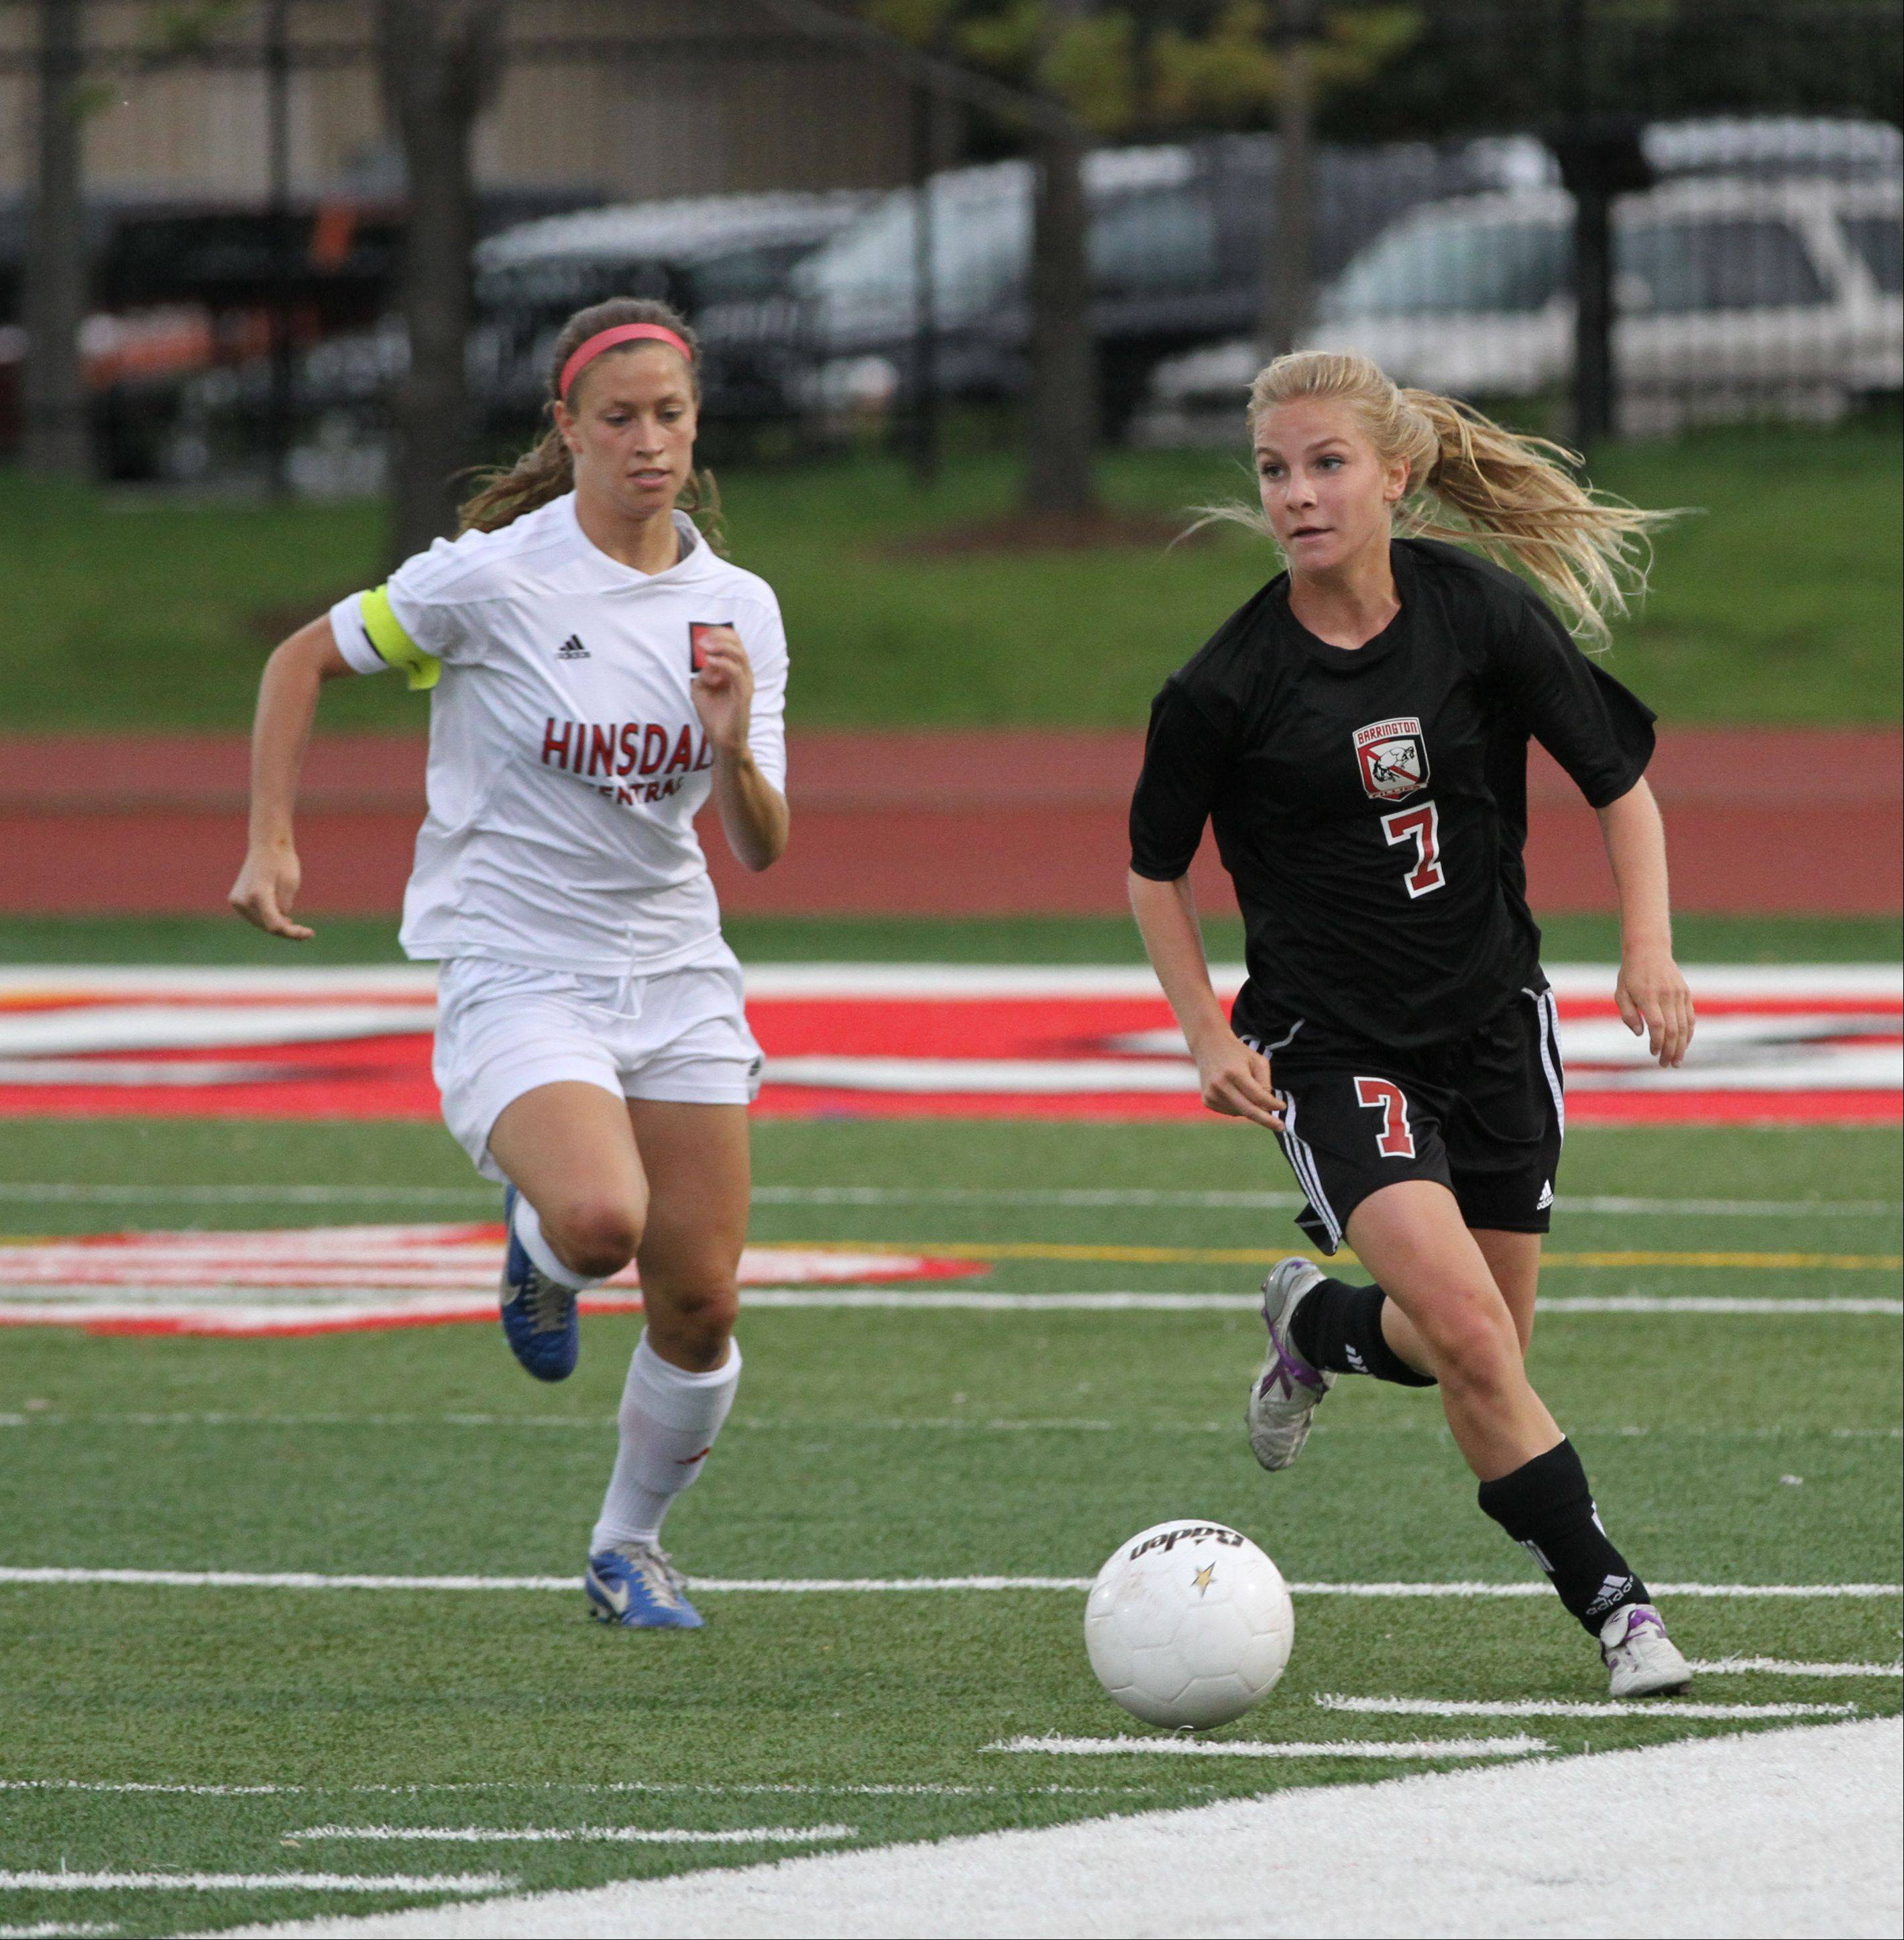 Barrington junior midfielder Alex Avers makes a run in the Class 3A girls soccer state semifinals against Hinsdale Central on Friday at North Central College.